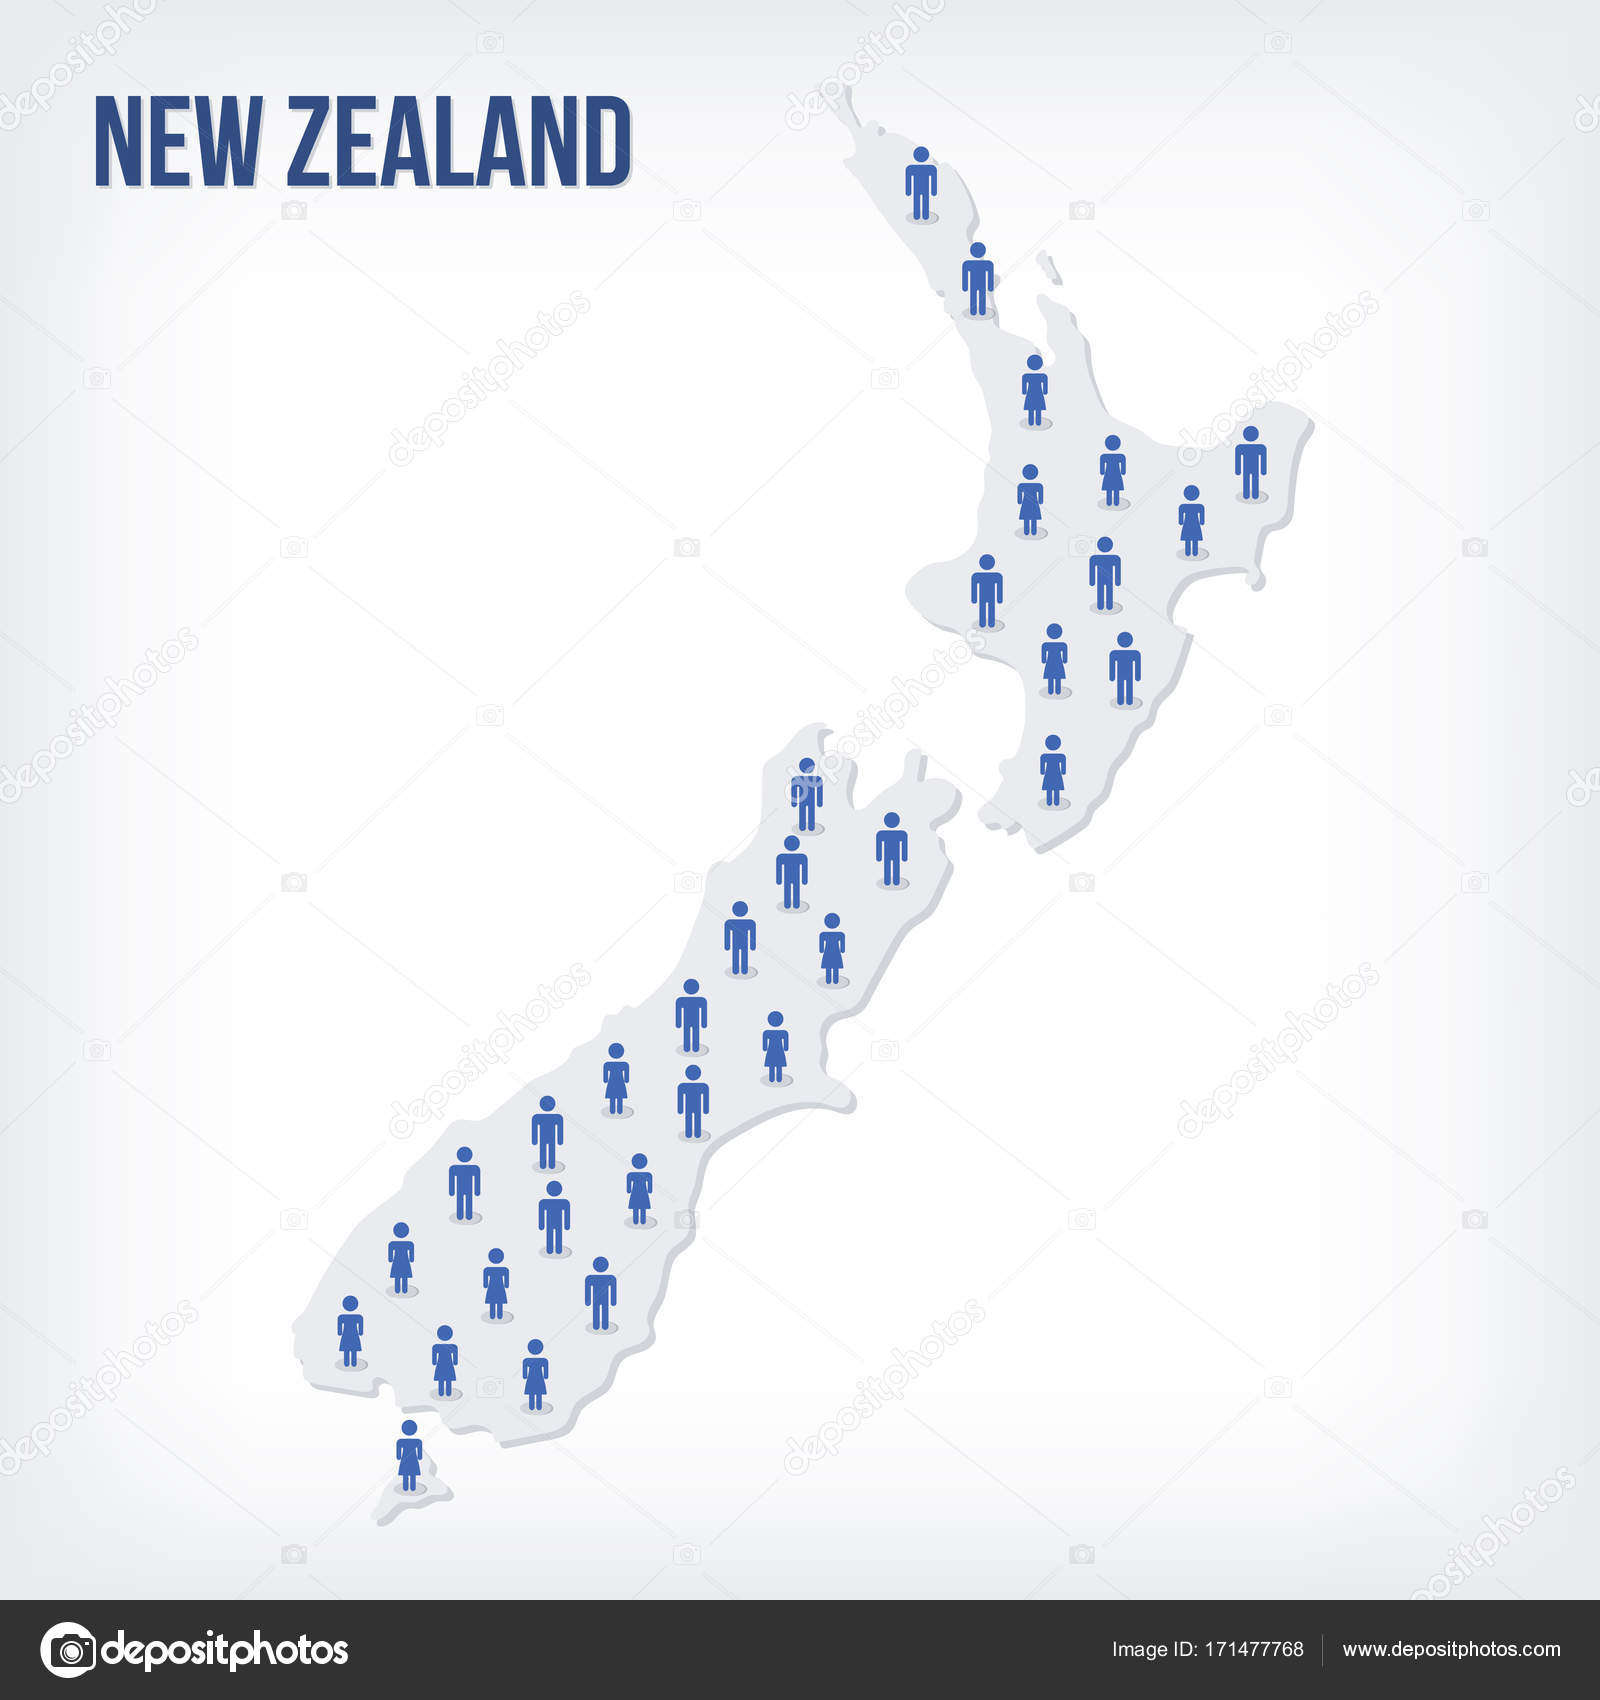 Population Concept Map.Vector People Map Of New Zealand The Concept Of Population